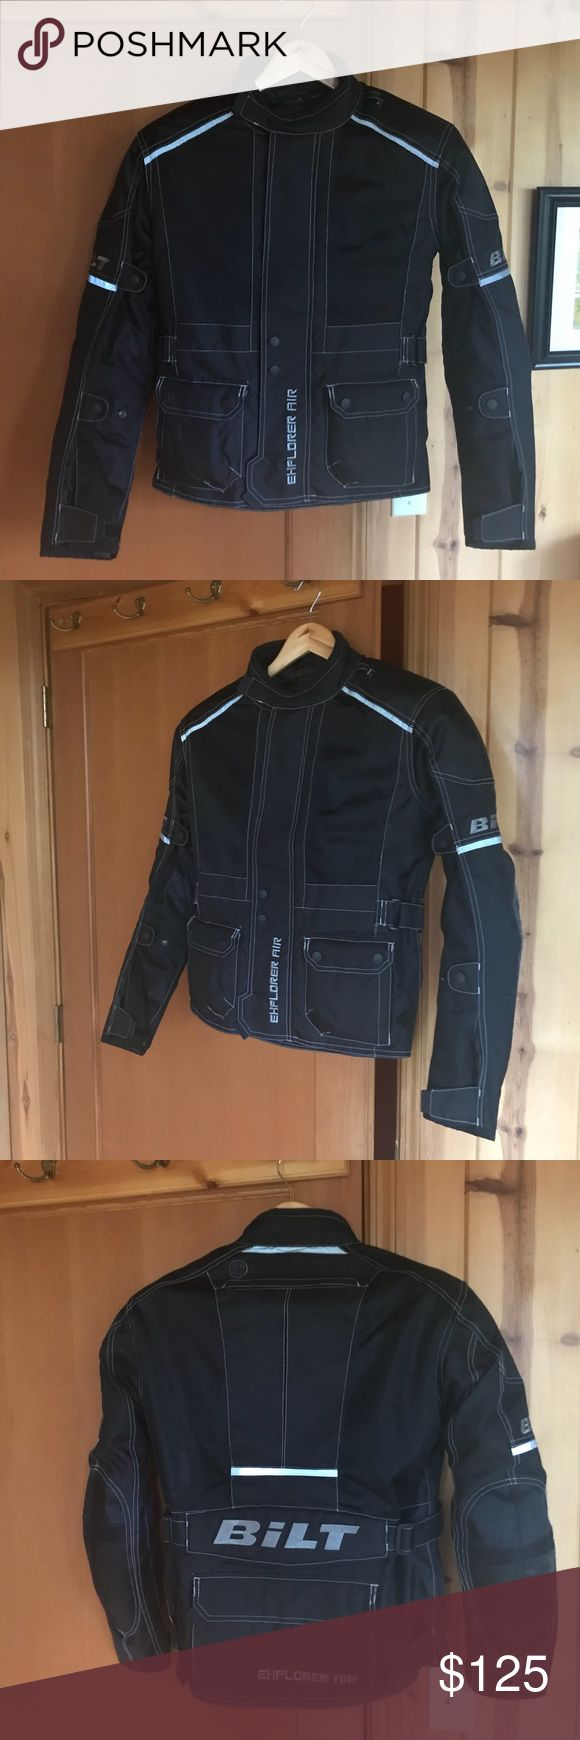 Bilt Motorcycle Jacket, Brand New Bilt brand motorcycle jacket, black, men's size small. Like new condition. Literally used one time for a 3 hour ride. This jacket is so nice and super warm.   Follow this link for specs: https://www.cyclegear.com/gear/bilt-explorer-adventure-waterproof-jacket  I'm 5'10/140 and a woman and this fit me perfectly.    Regularly $399.99 I paid $199.99 on sale Selling for $125 !!! Bilt Jackets & Coats